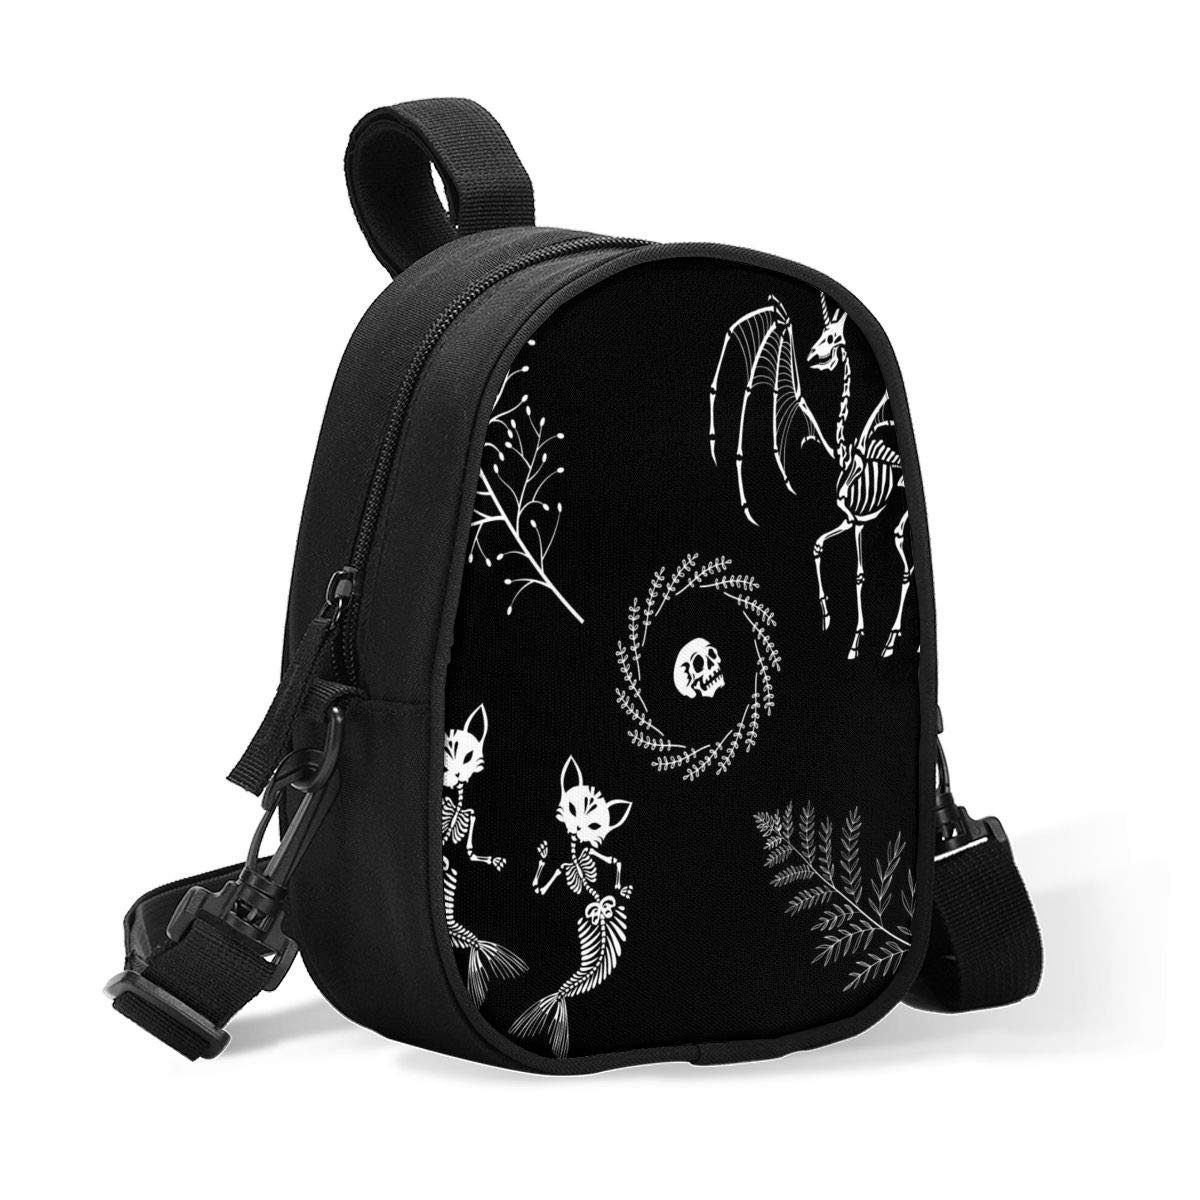 Insulated Baby Bottle Tote Bags for Travel Double Baby Bottle Warmer Or Cool Skeletons of A Magic Creatures Breastmilk Baby Bottle Cooler & Travel Bag, Easily Attaches to Stroller Or Diaper Bag